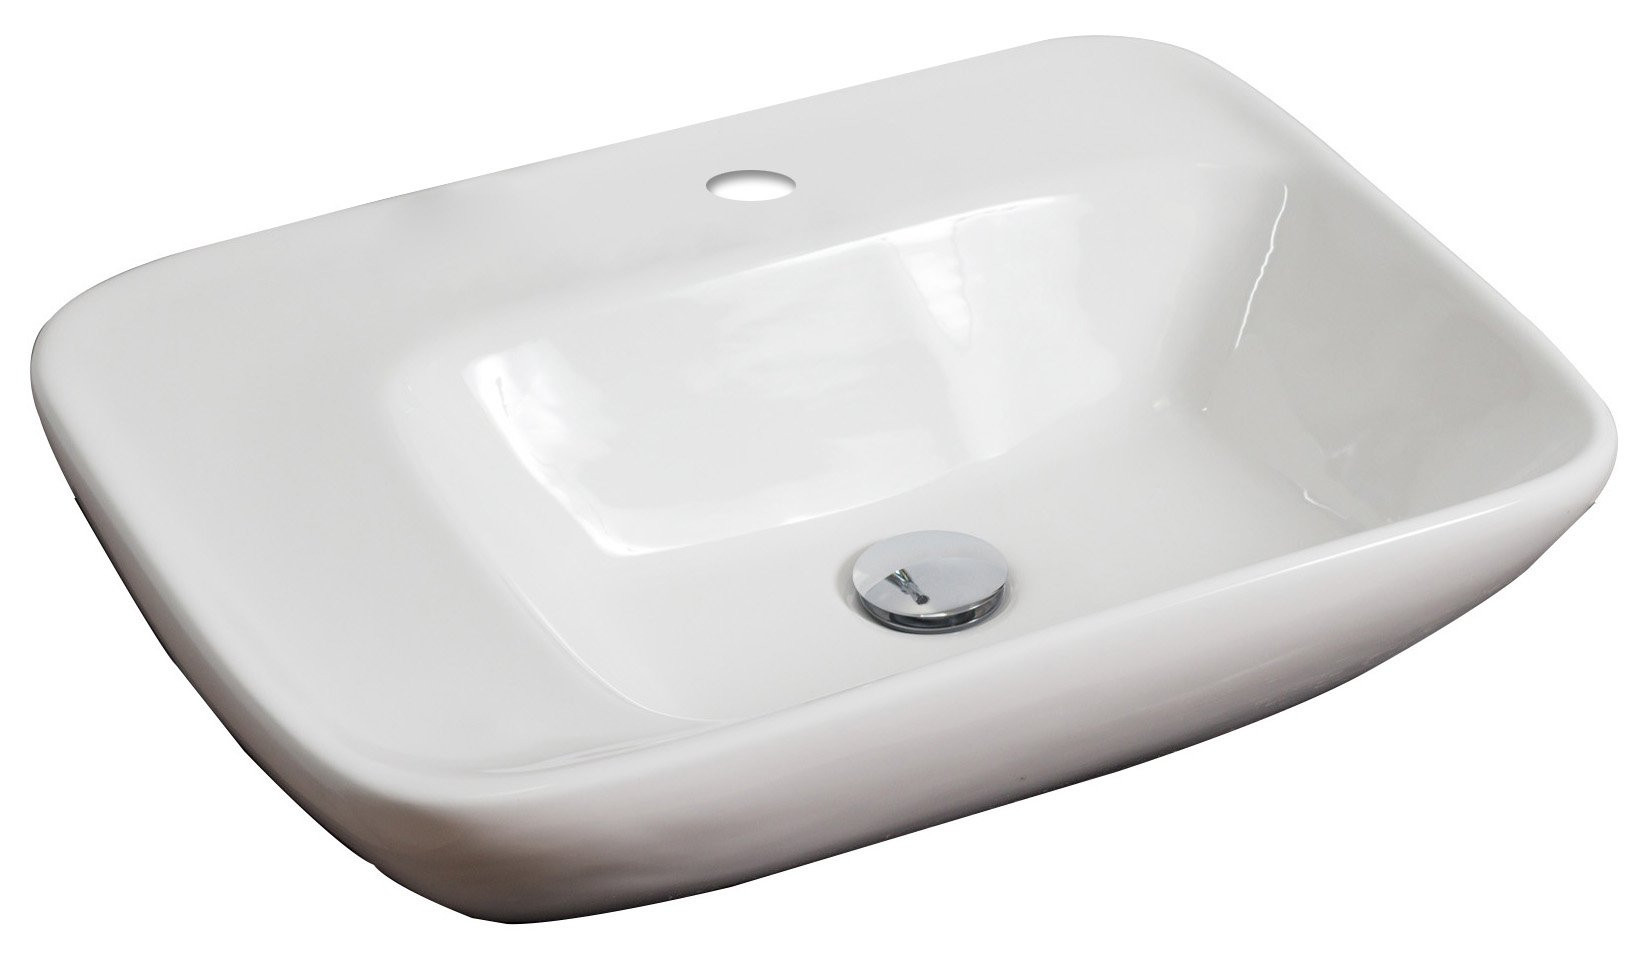 American Imagination AI-688 Wall Mount Rectangle Vessel In White Color For Single Hole Faucet